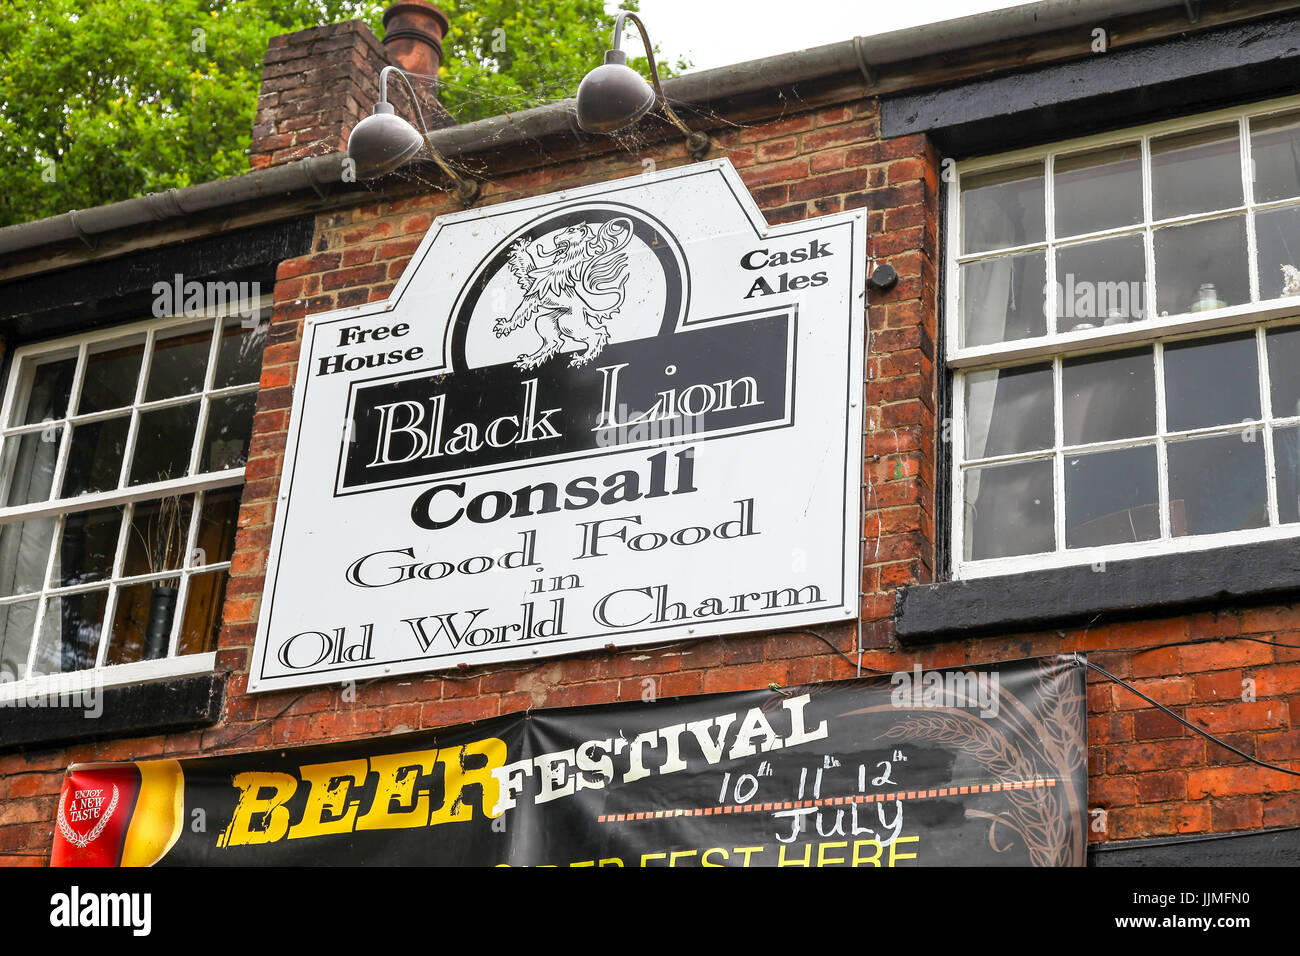 Black Lion public house at Consall, there are no public roads leading to it. Access is on foot, via the canal towpath, - Stock Image